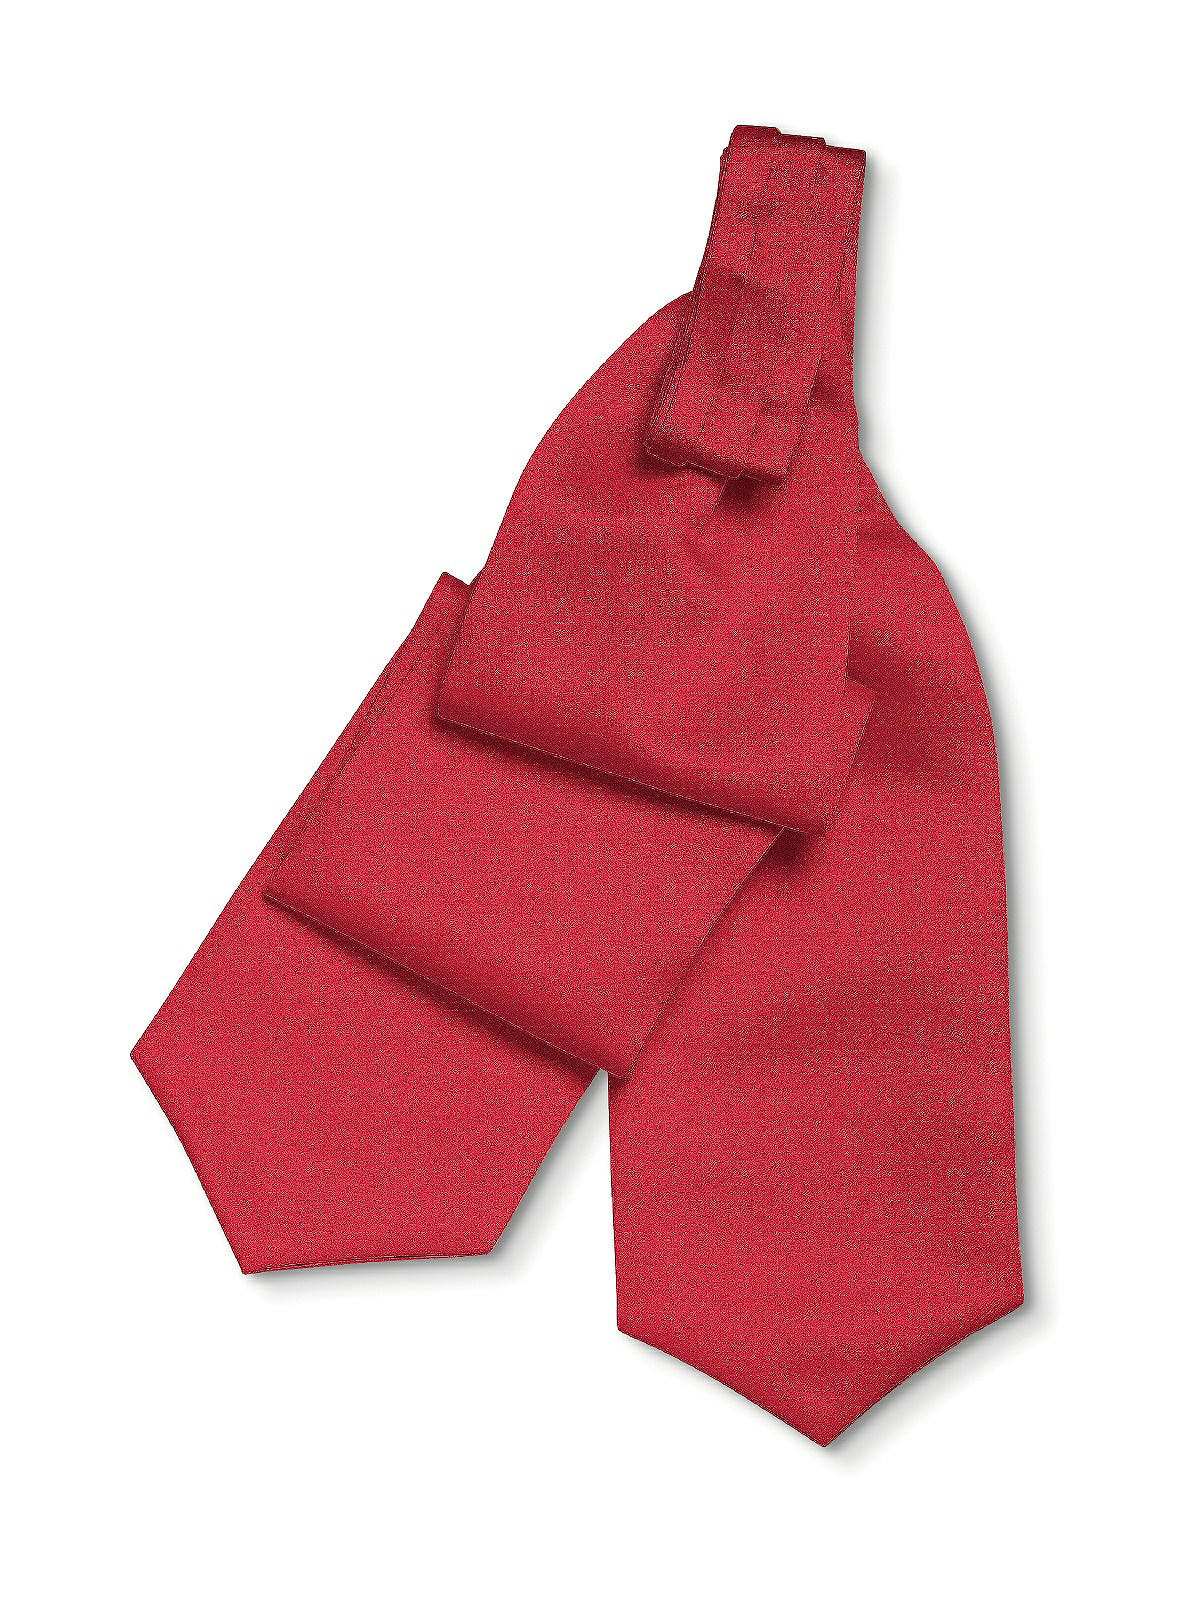 scarlet cravat for bridegroom